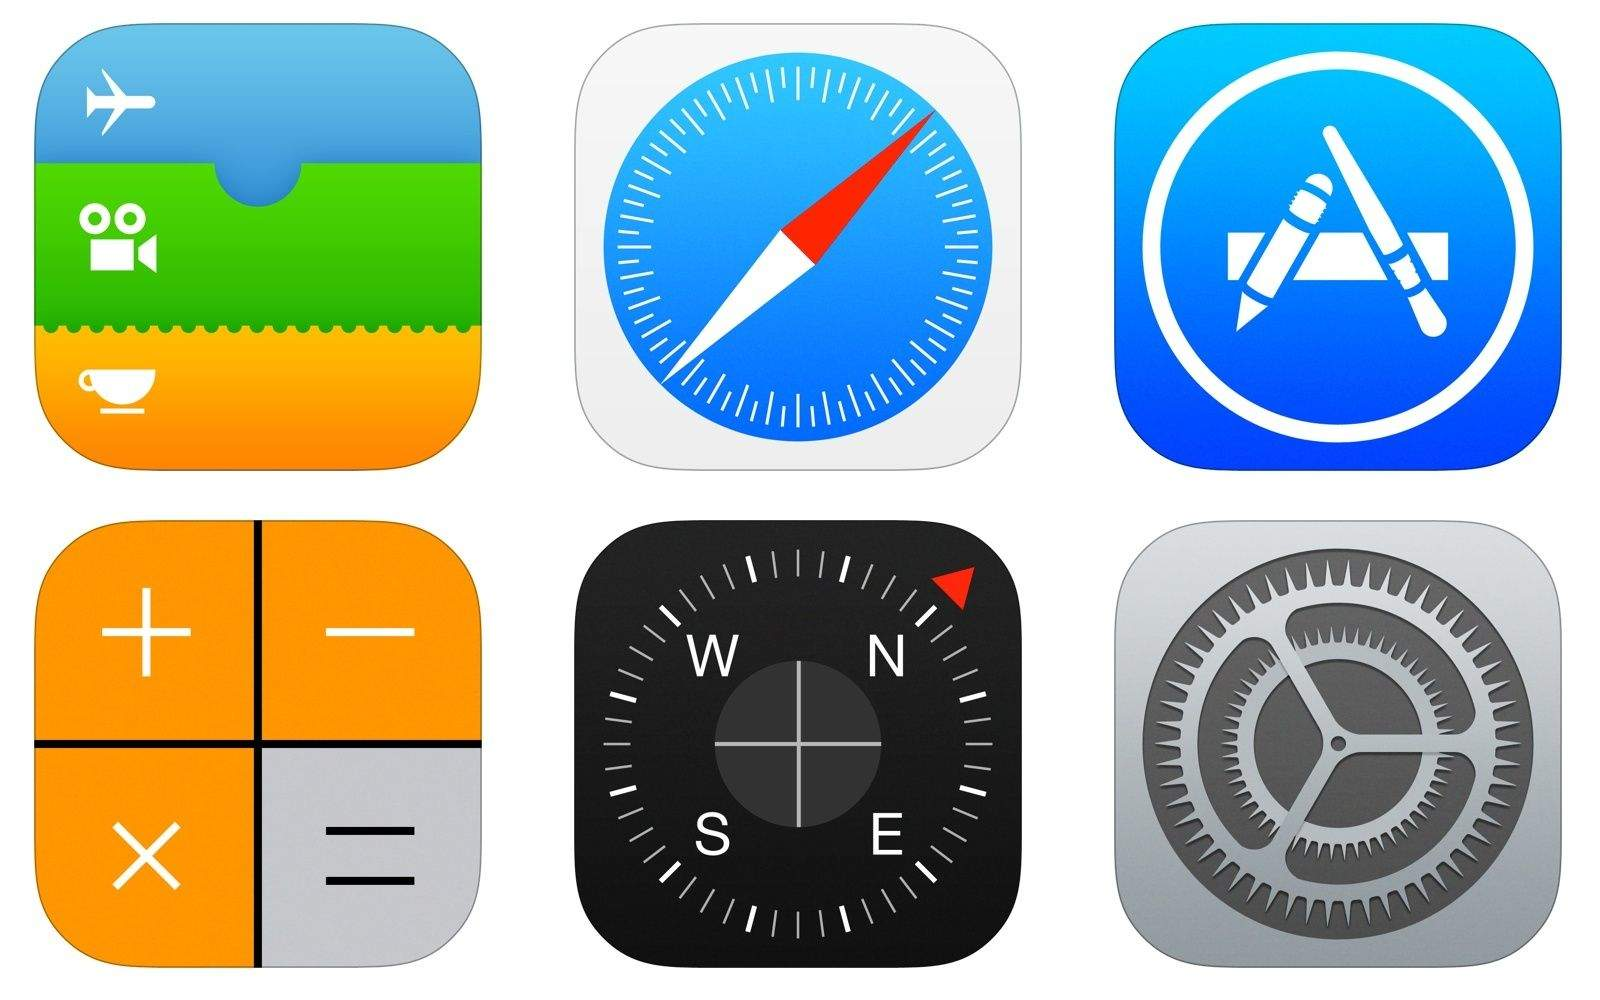 Here's how to animated iOS's app icons.